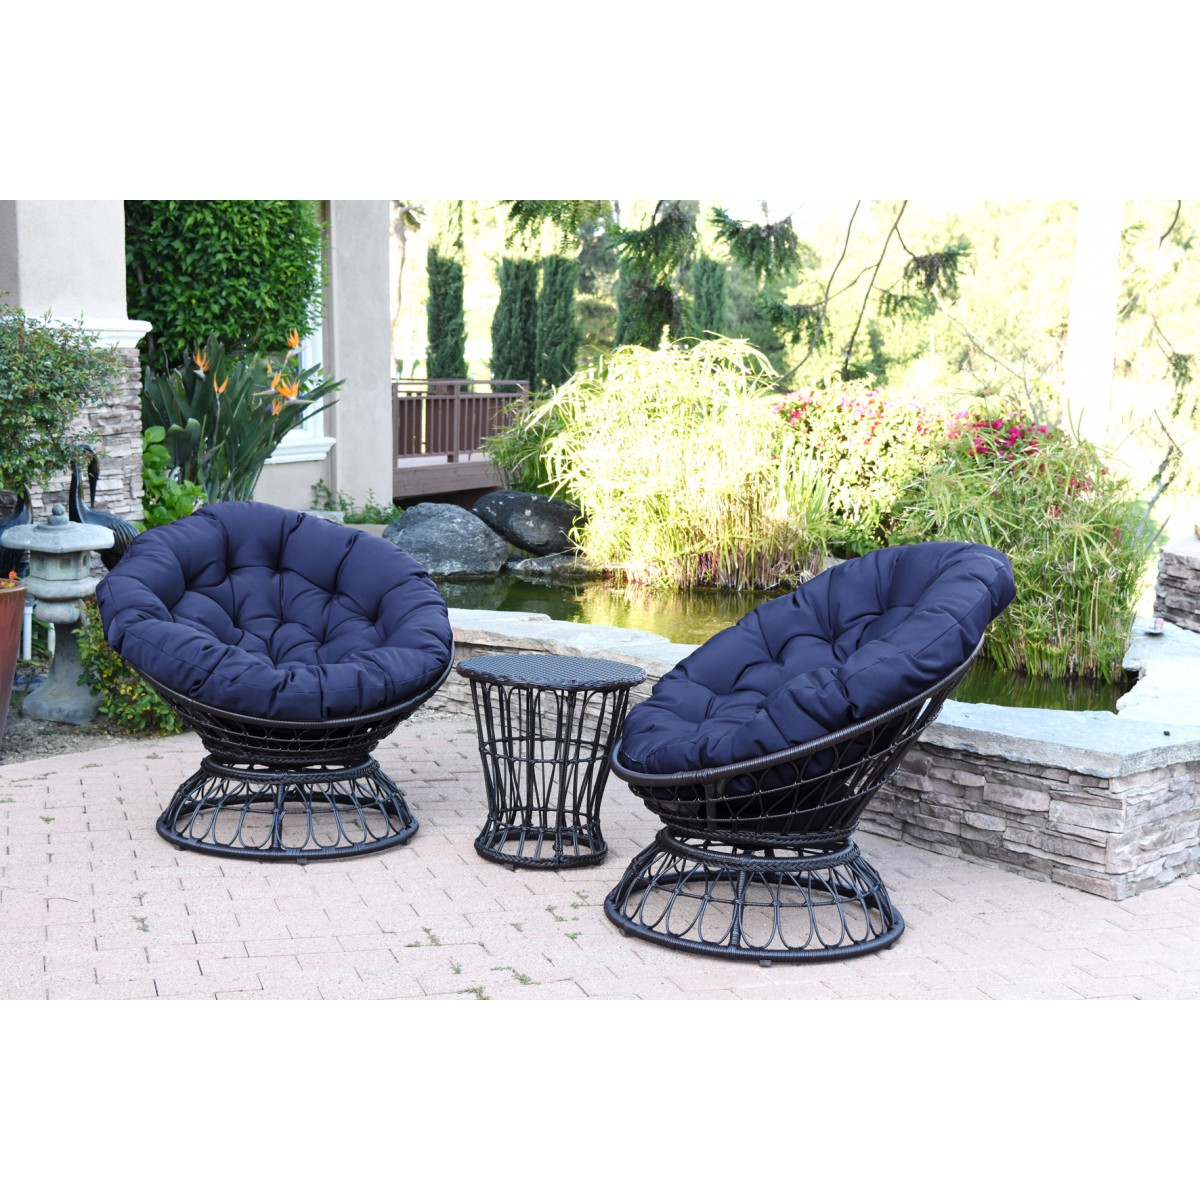 Papasan Espresso Wicker Swivel Chair And Table Set With Blue Cushion